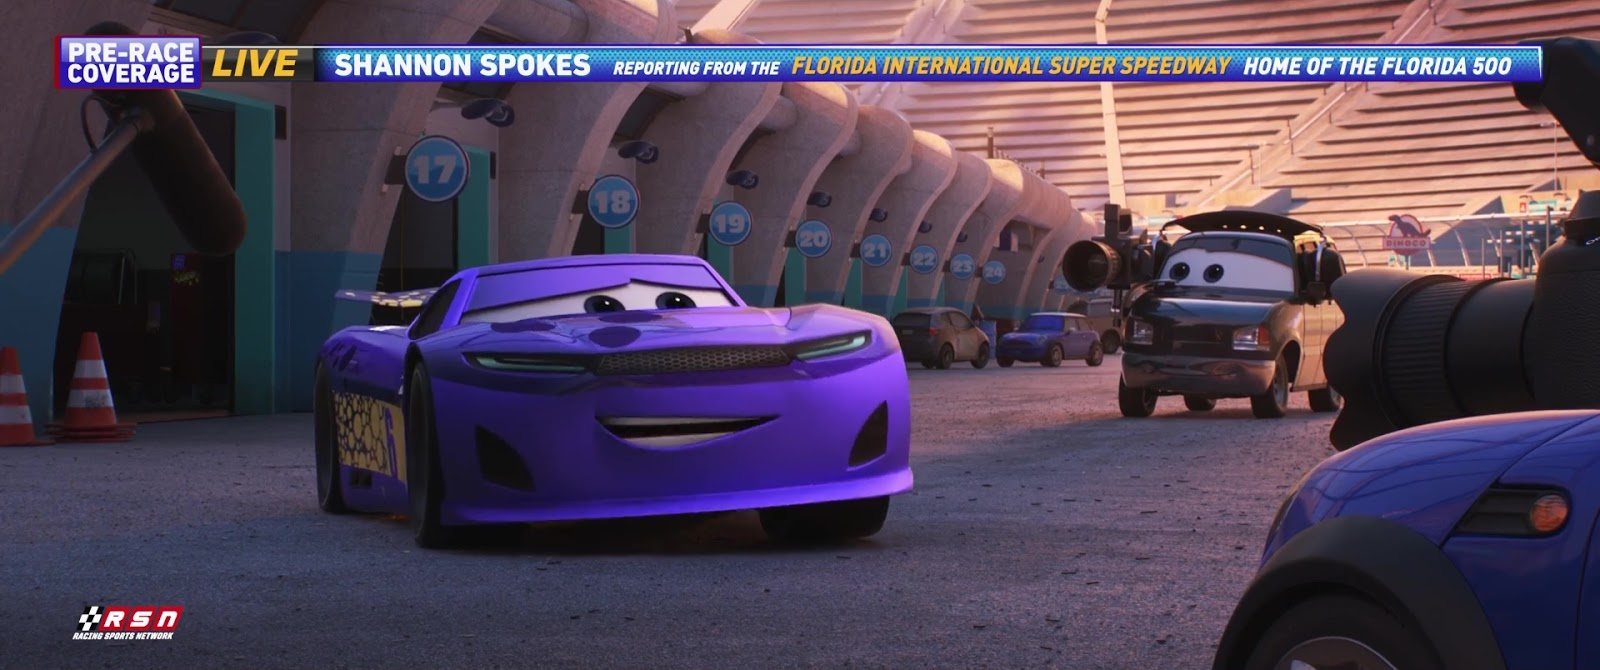 Cars 3: Bubba Wheelhouse (Transberry Juice)